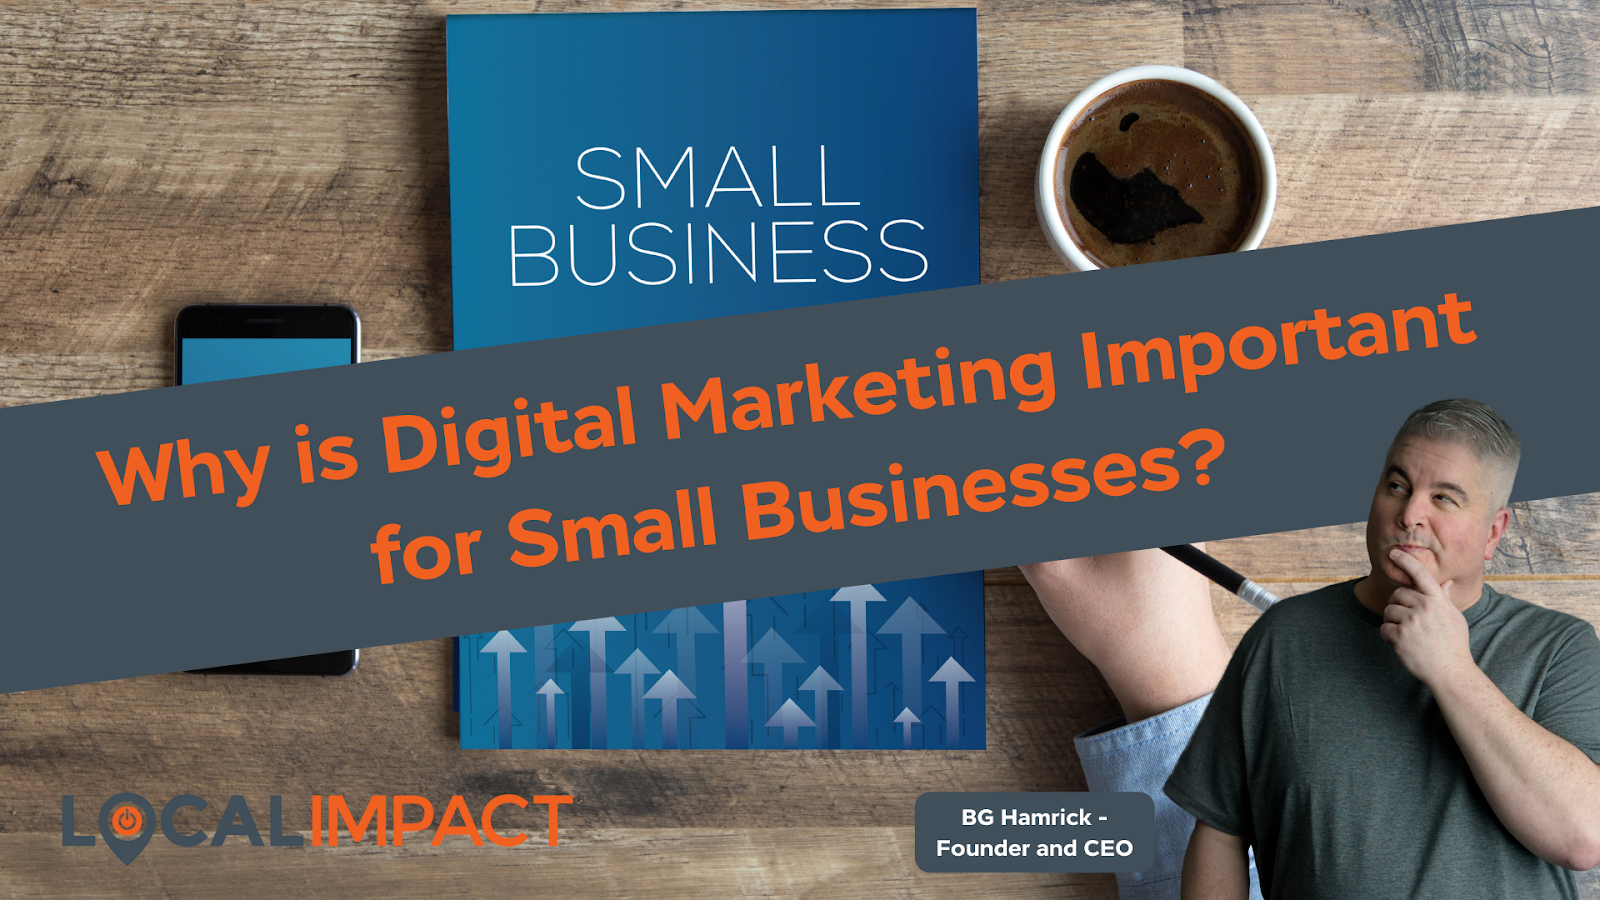 Why is Digital Marketing Important for Small Businesses with man on the foreground